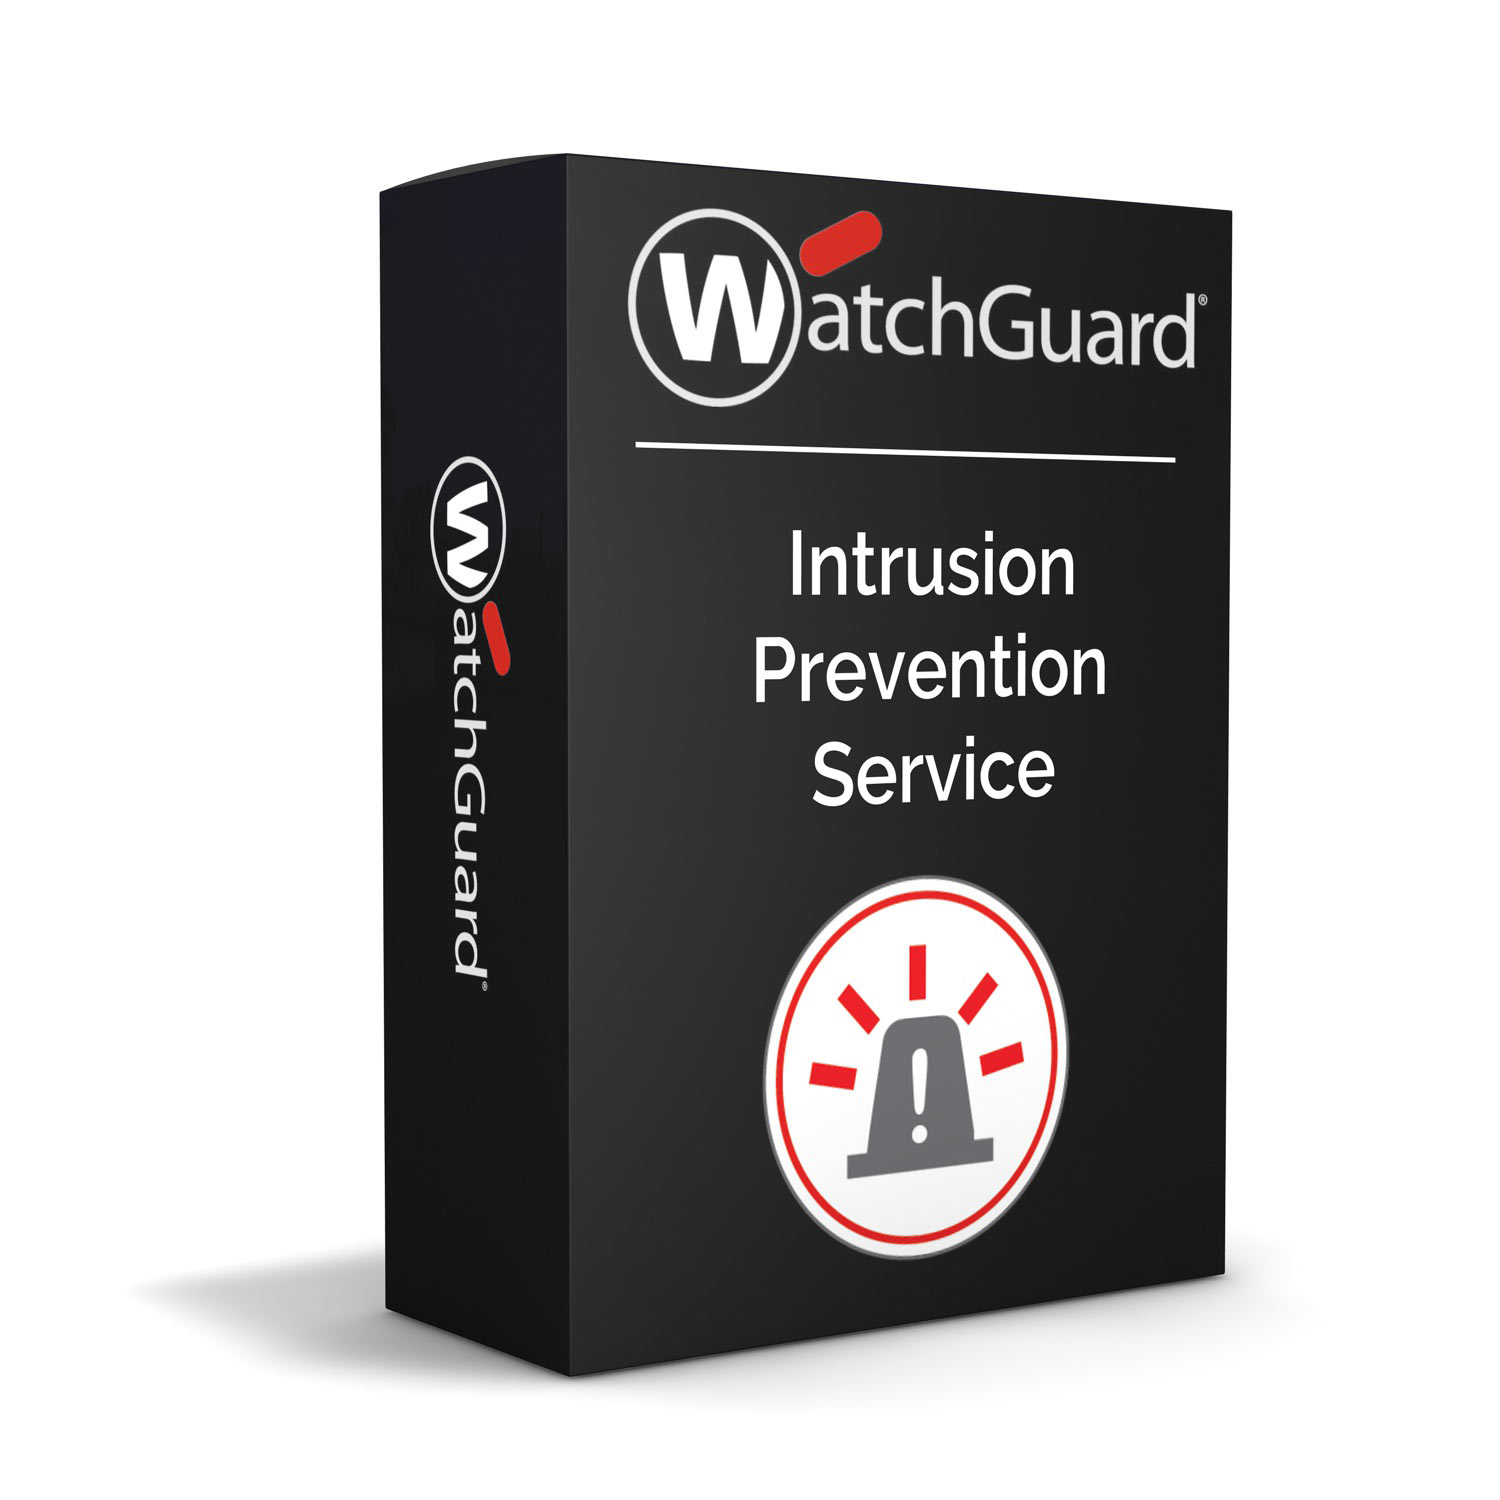 WatchGuard Intrusion Prevention System 1-yr for Firebox T30 Models